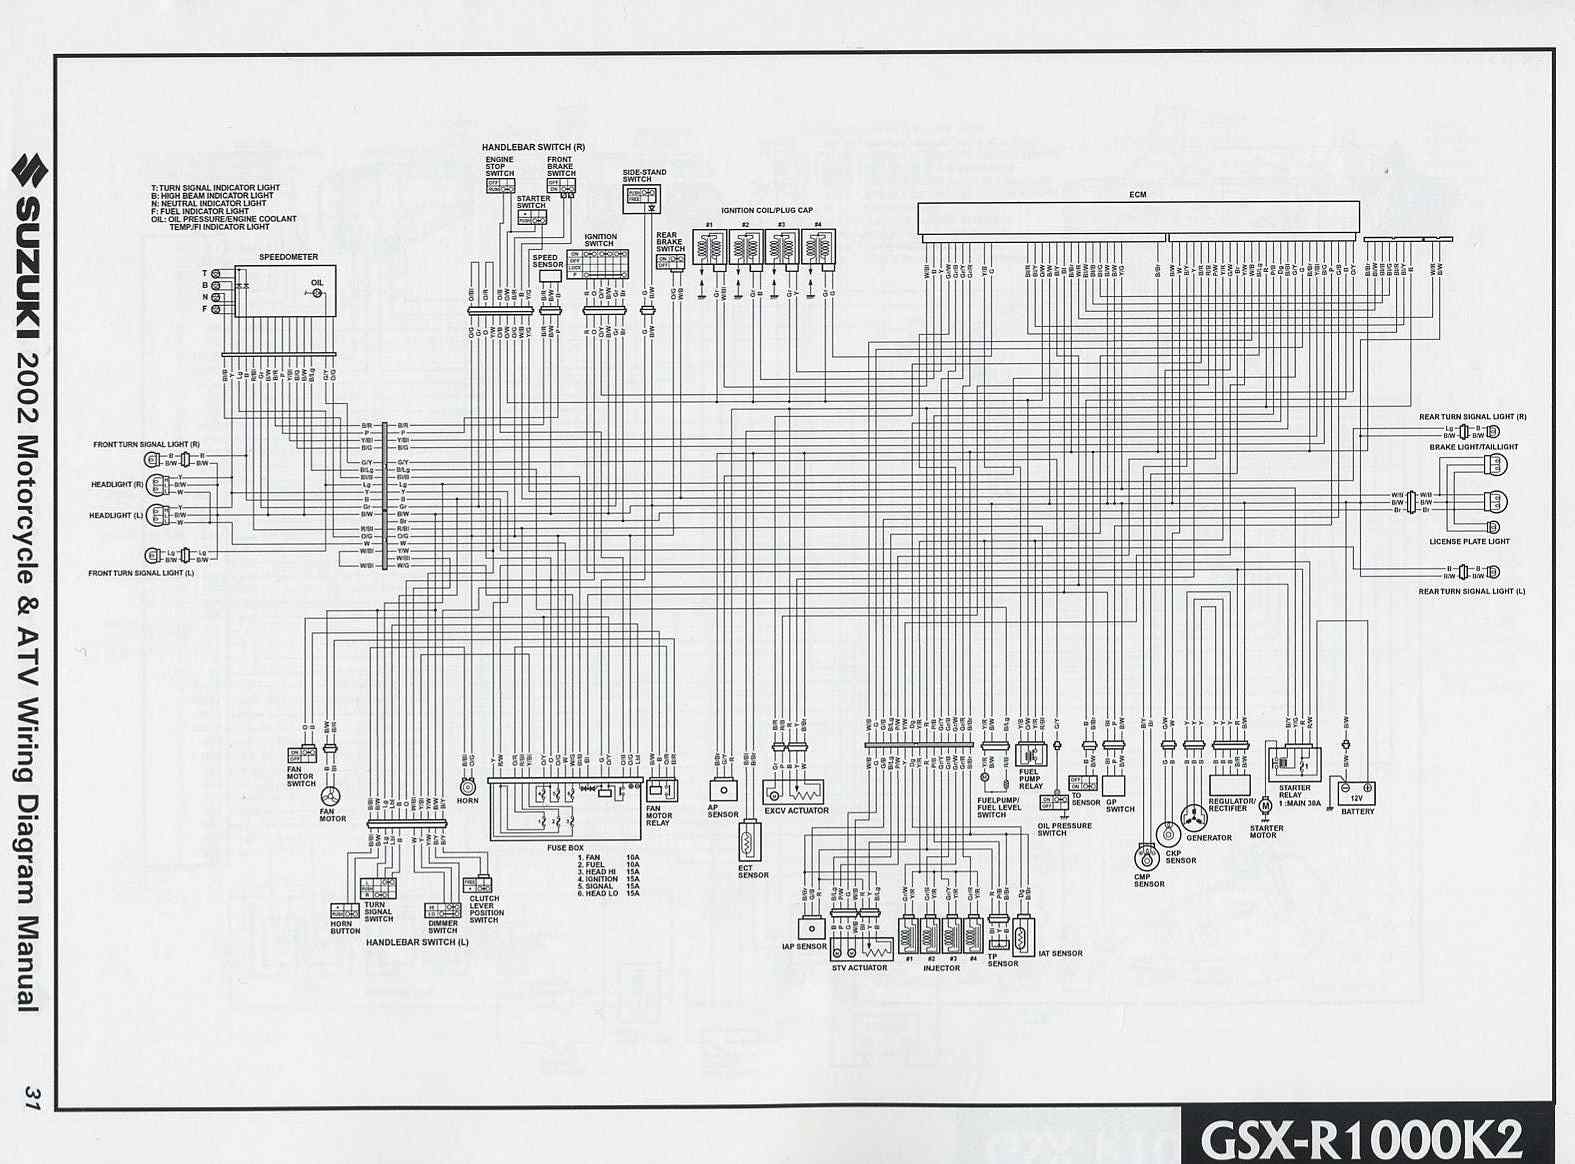 1999 Suzuki Gsxr 600 Wiring Schematics from 3.bp.blogspot.com